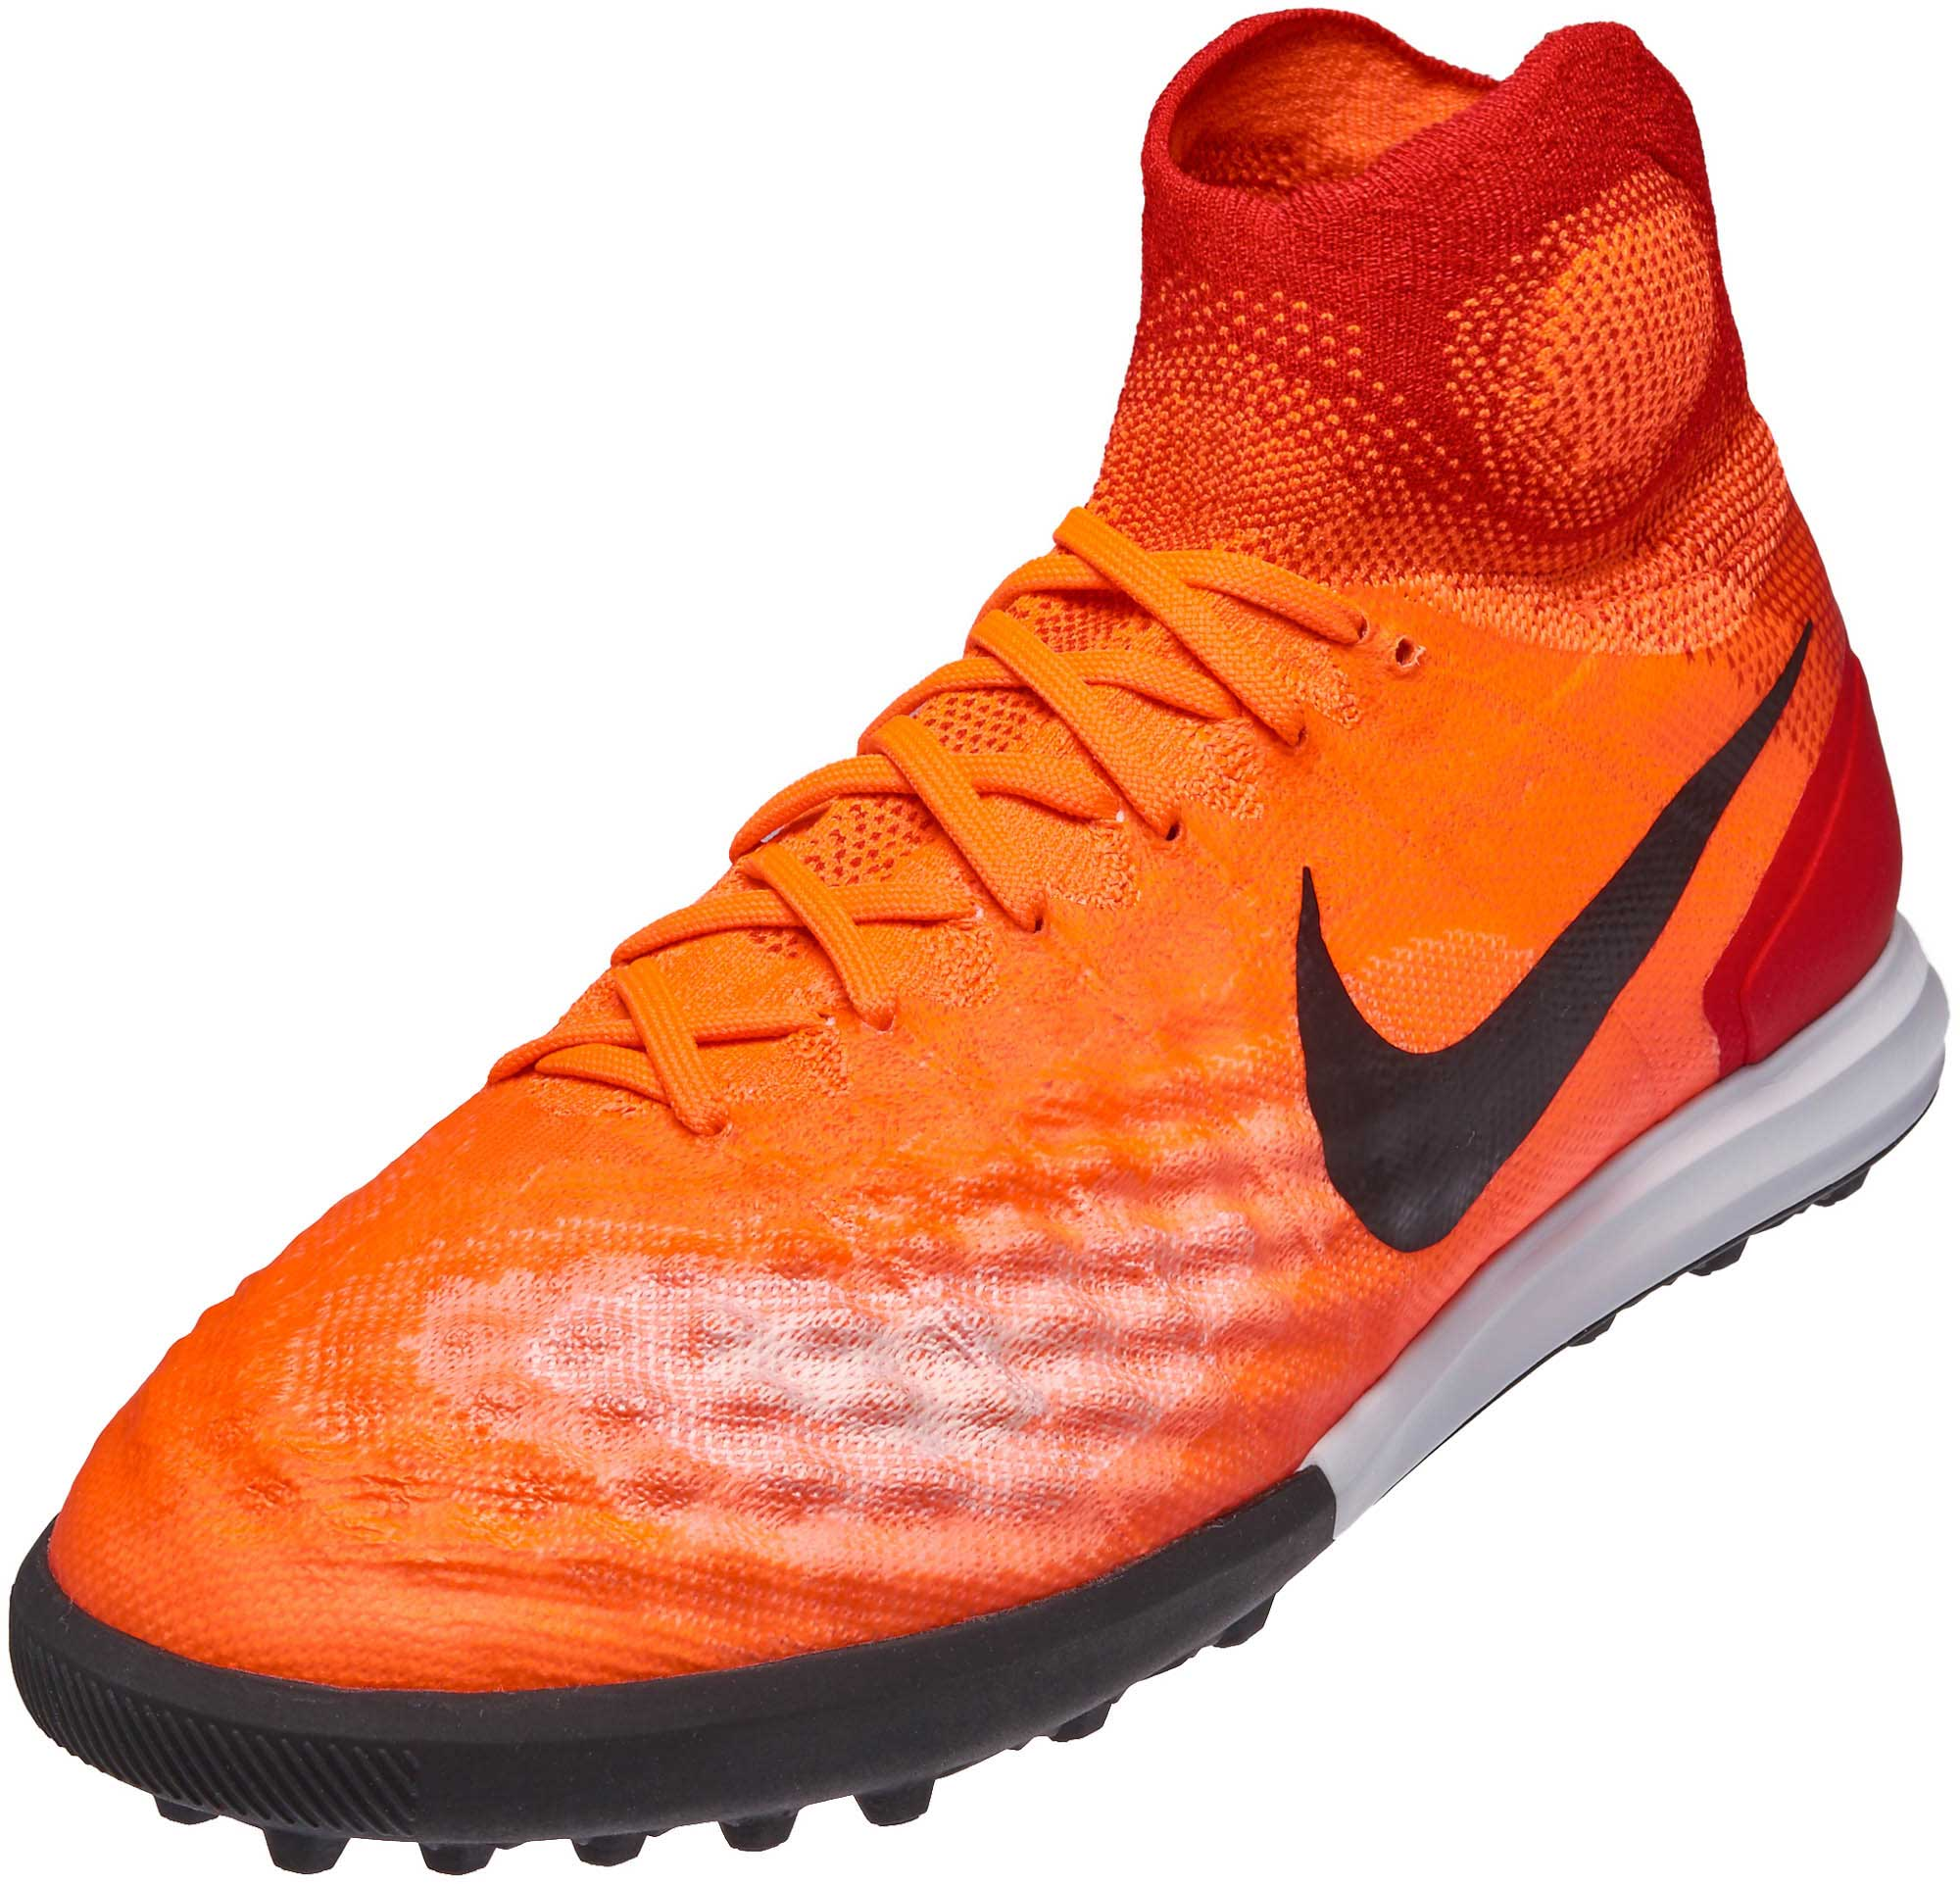 sports shoes 970db 837a6 Nike MagistaX Proximo II TF – Total Crimson University Red